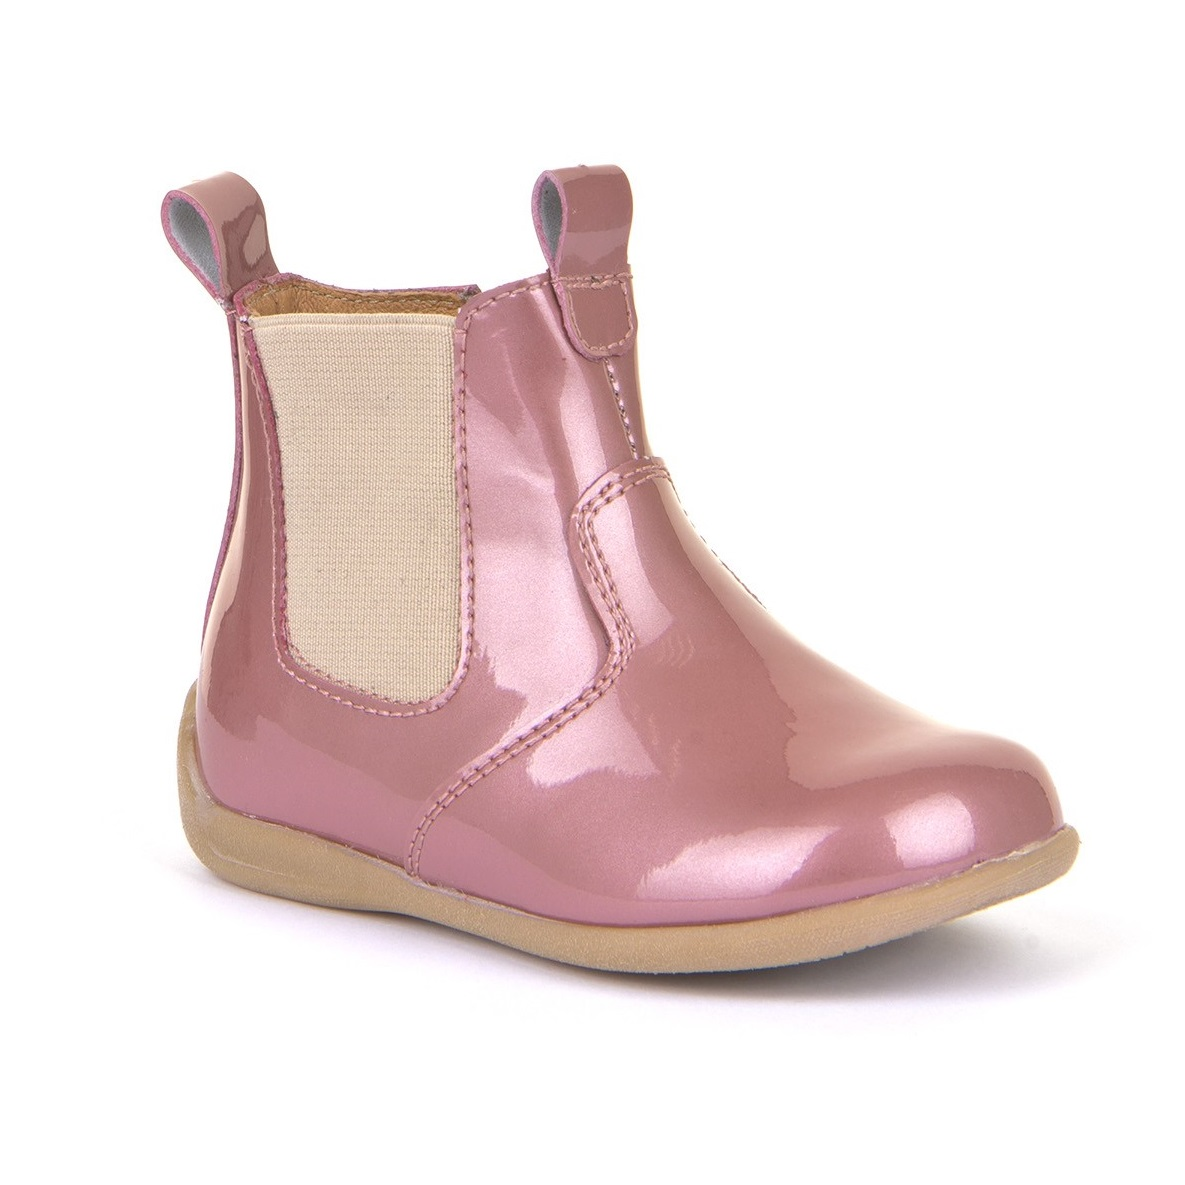 FRODDO Girls Chelsea Boots Patent Pink G2160054 NOW £37